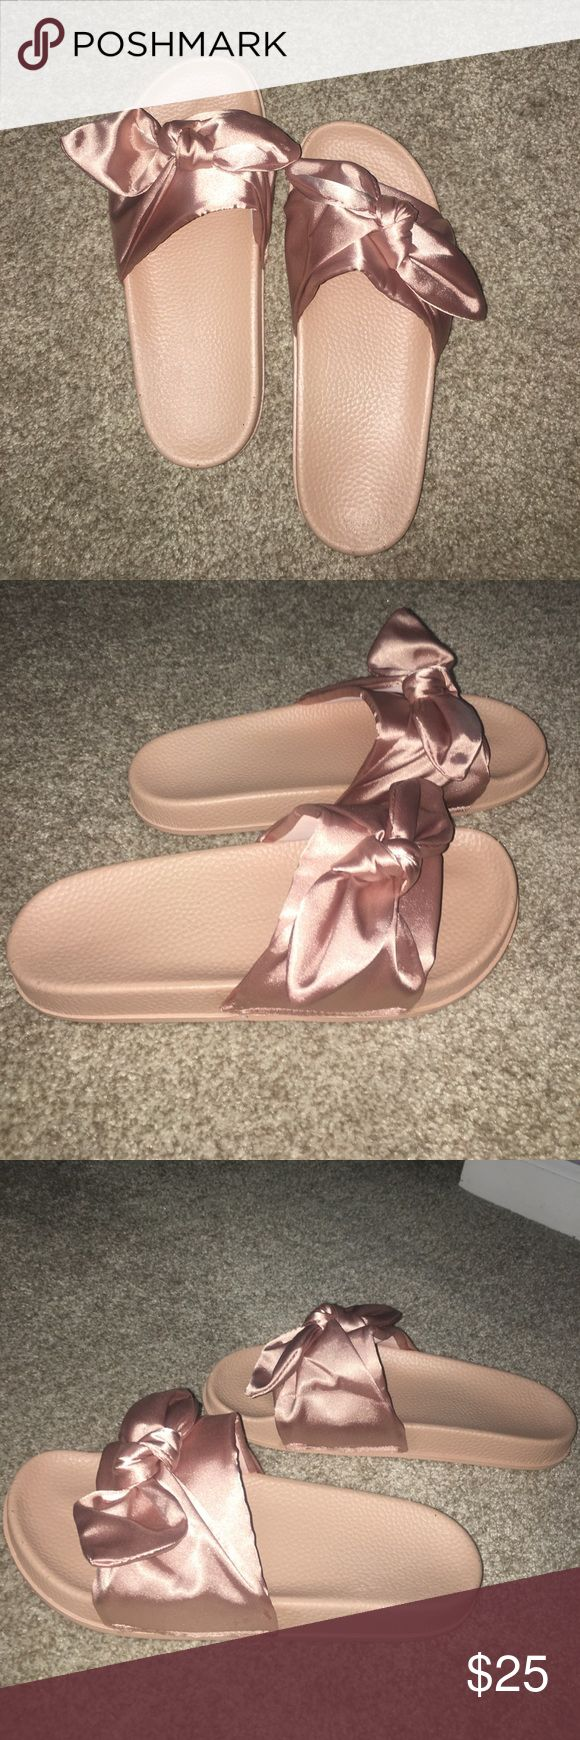 Pink Bow Tie Slides (imitation of Fenty slides) These are rose gold/ pink bow tie slides and are the fake version of the Rihanna fenty slides. They are really comfy, but although they claim to fit a size 9 they actually fit a size 8. There is no logo on them, but when feet are inside, you can't tell the difference from the real ones. The quality isn't bad for this price, I wish I could keep them but it just doesn't fit 😭 feel free to make me an offer also remember my bundle deal. Comment…